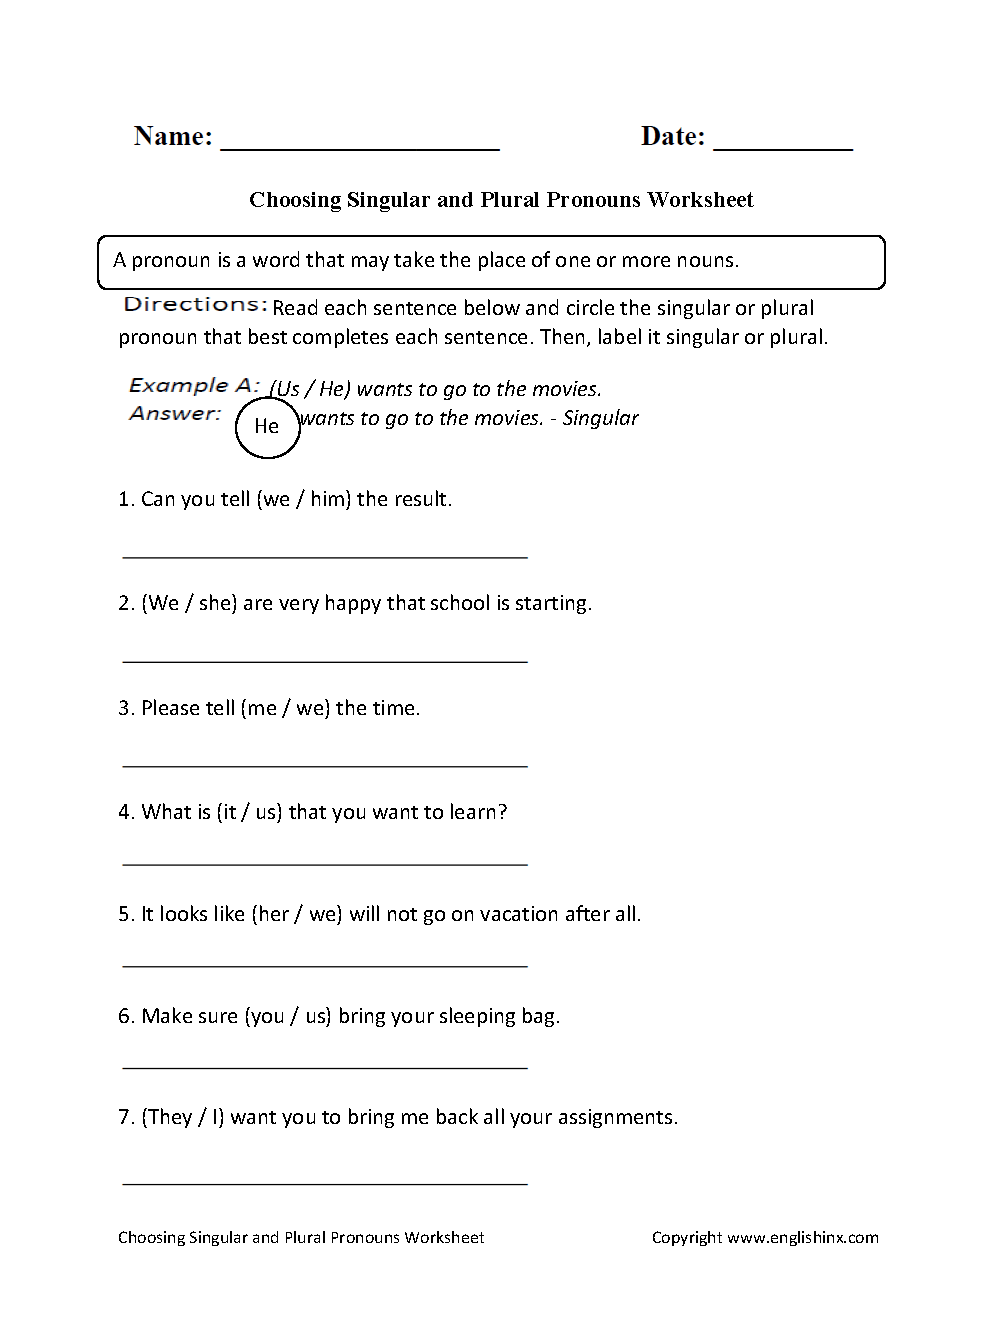 Worksheet Singular Pronouns pronouns worksheets singular and plural or worksheet